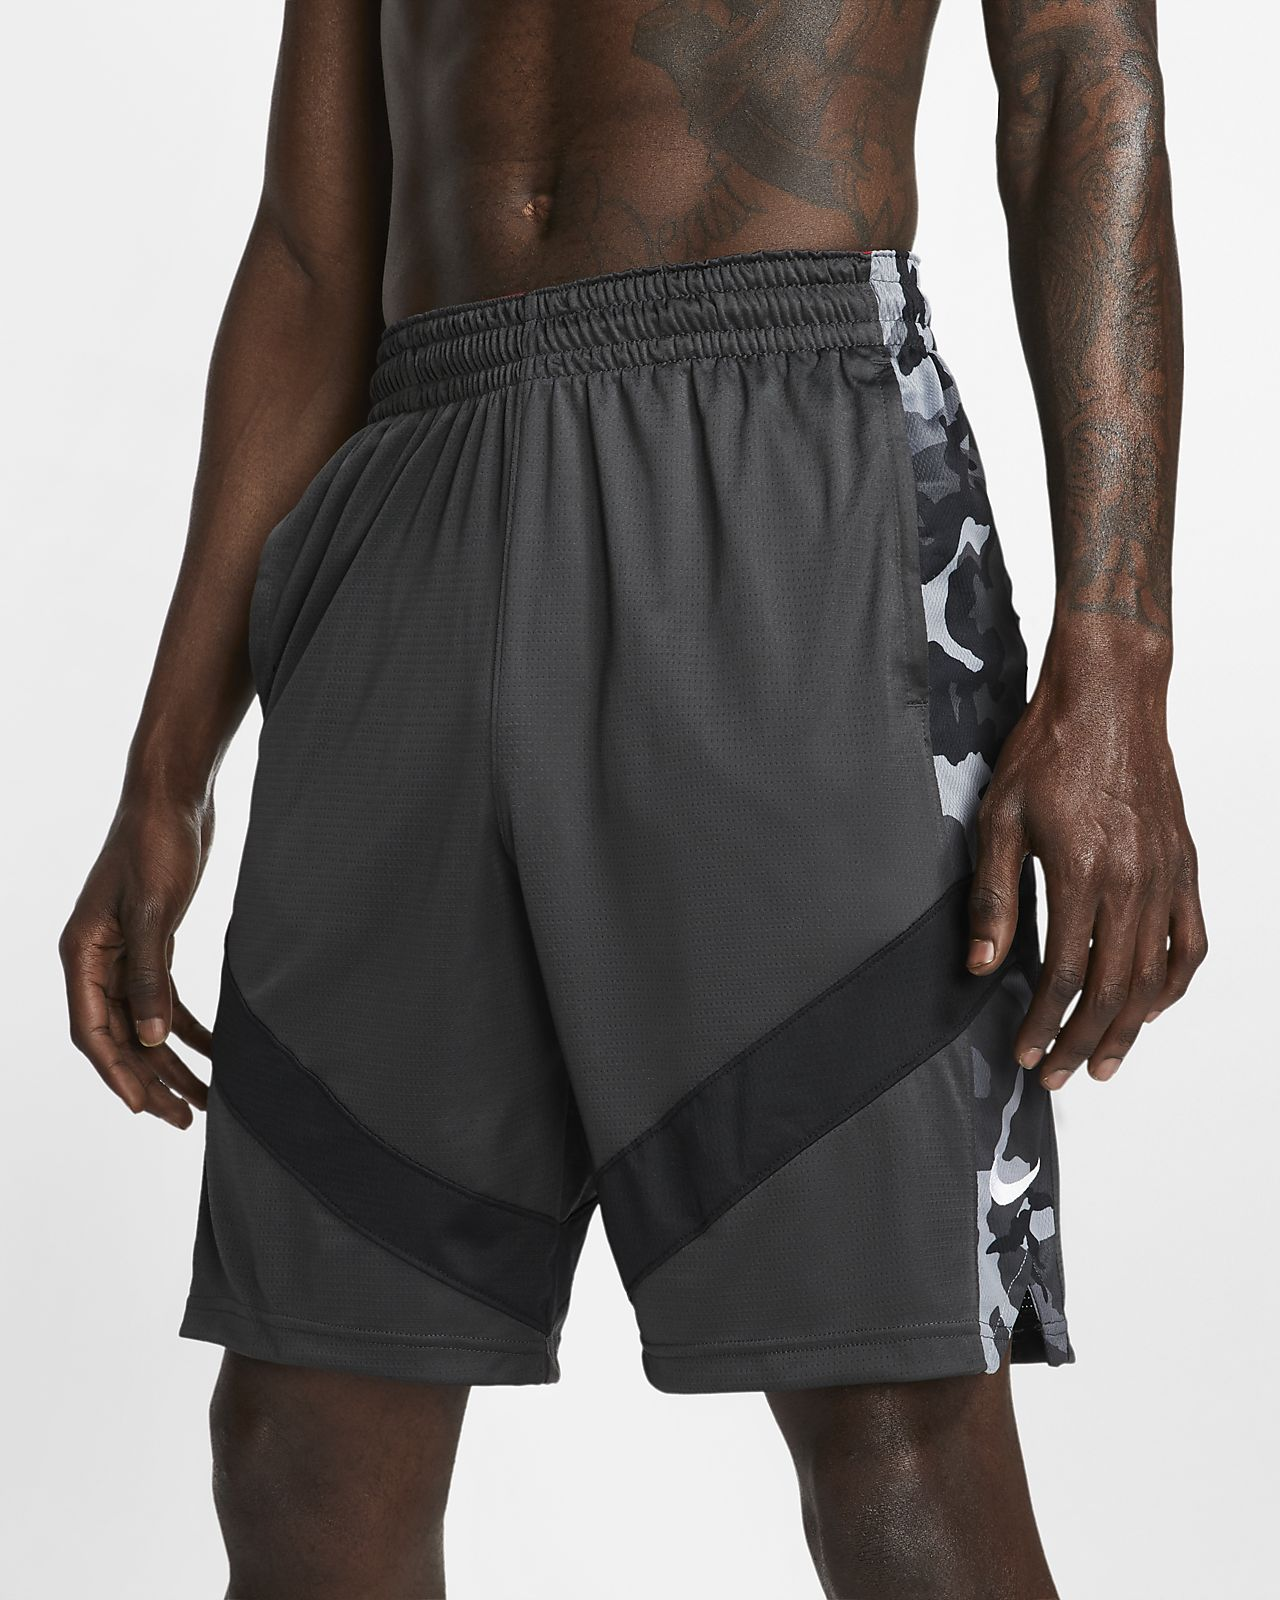 Nike Dri-FIT Courtlines Men's Printed Basketball Shorts